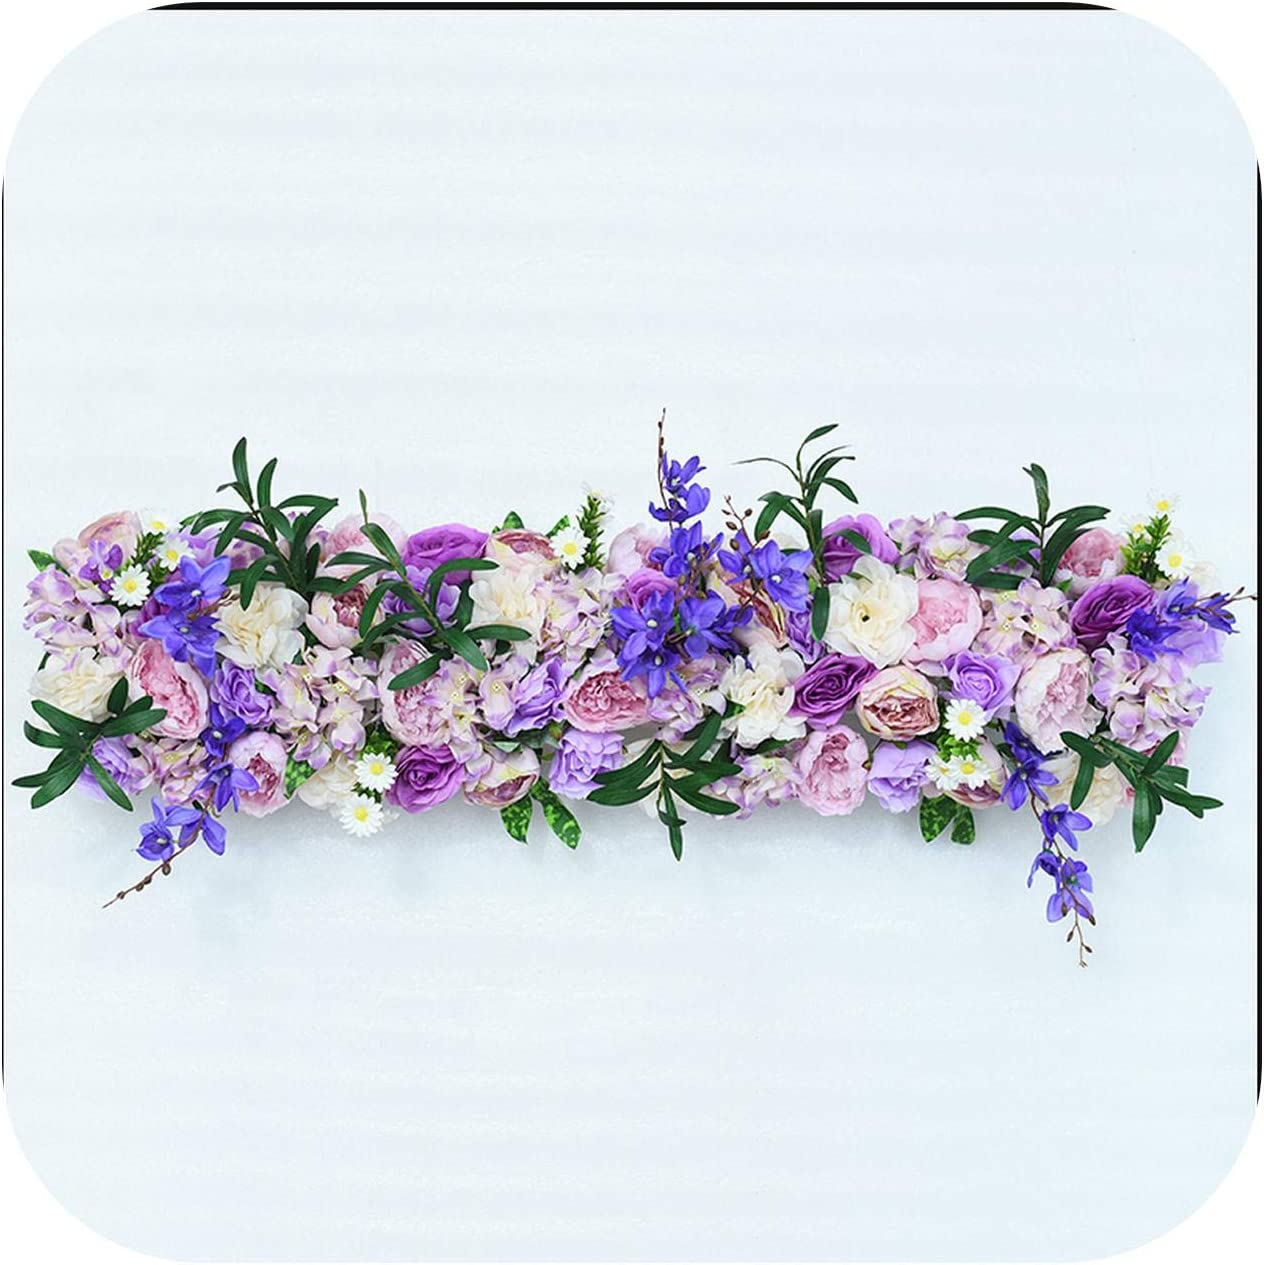 Amazon Com Dreamture 1m Backdrop Wedding Decor Artificial Flower Arrangement Supplies Decor For Wedding Iron Arch Hotel Party Road Lead Flowers Wall 12 Kitchen Dining